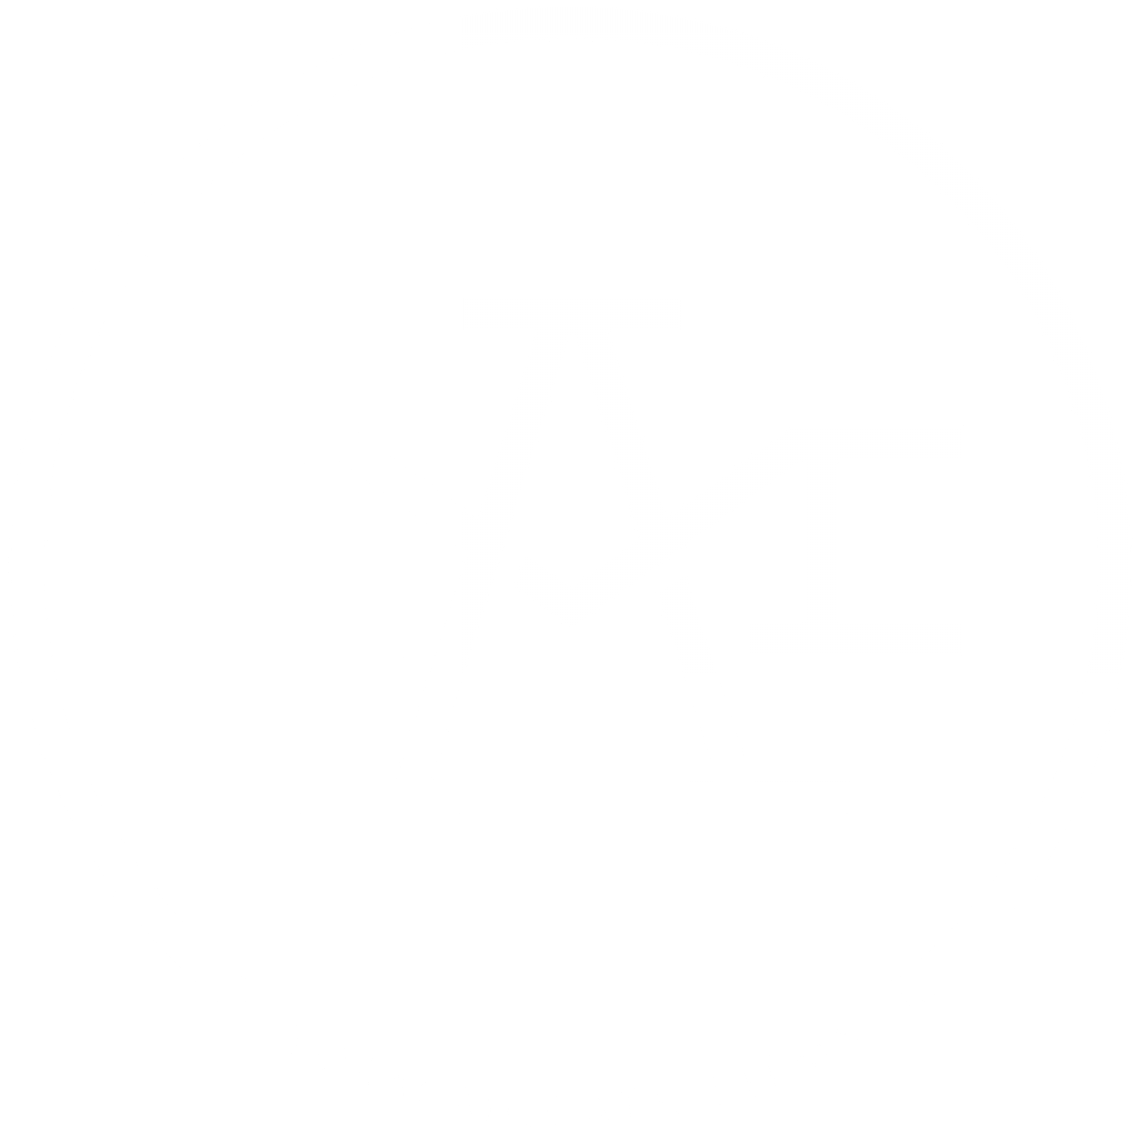 Adam McCain Films